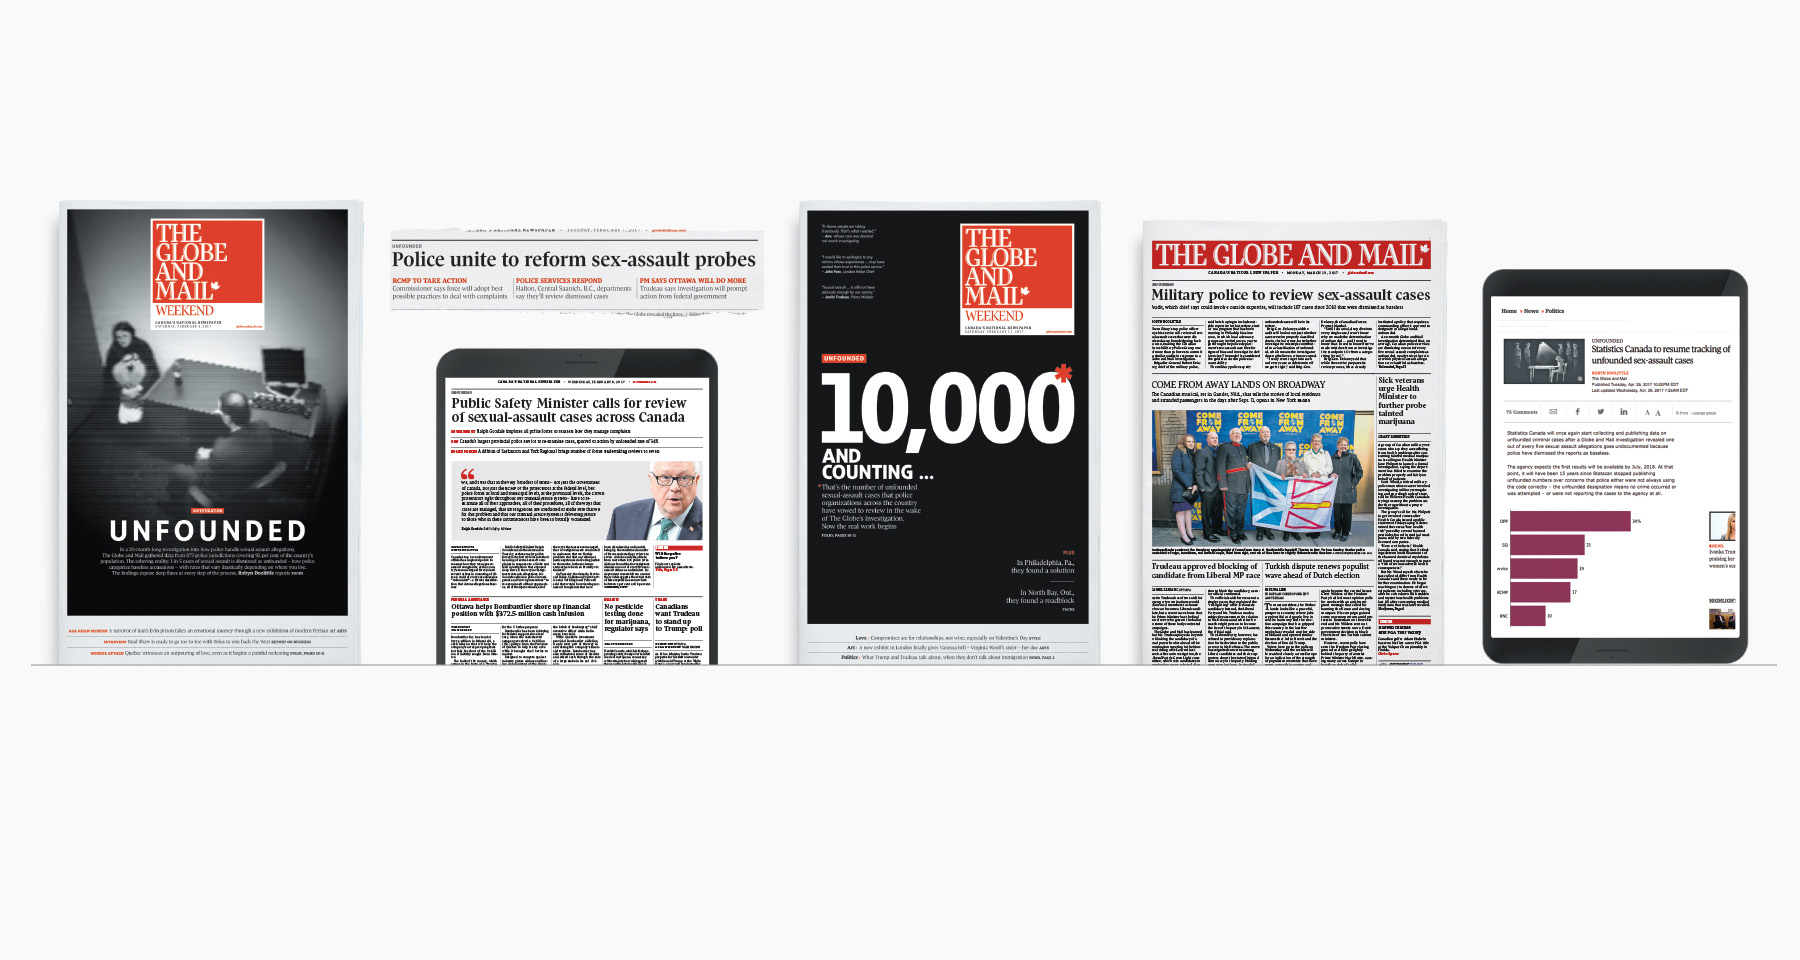 Globe and Mail campaign boosts subscriptions, influences public policy